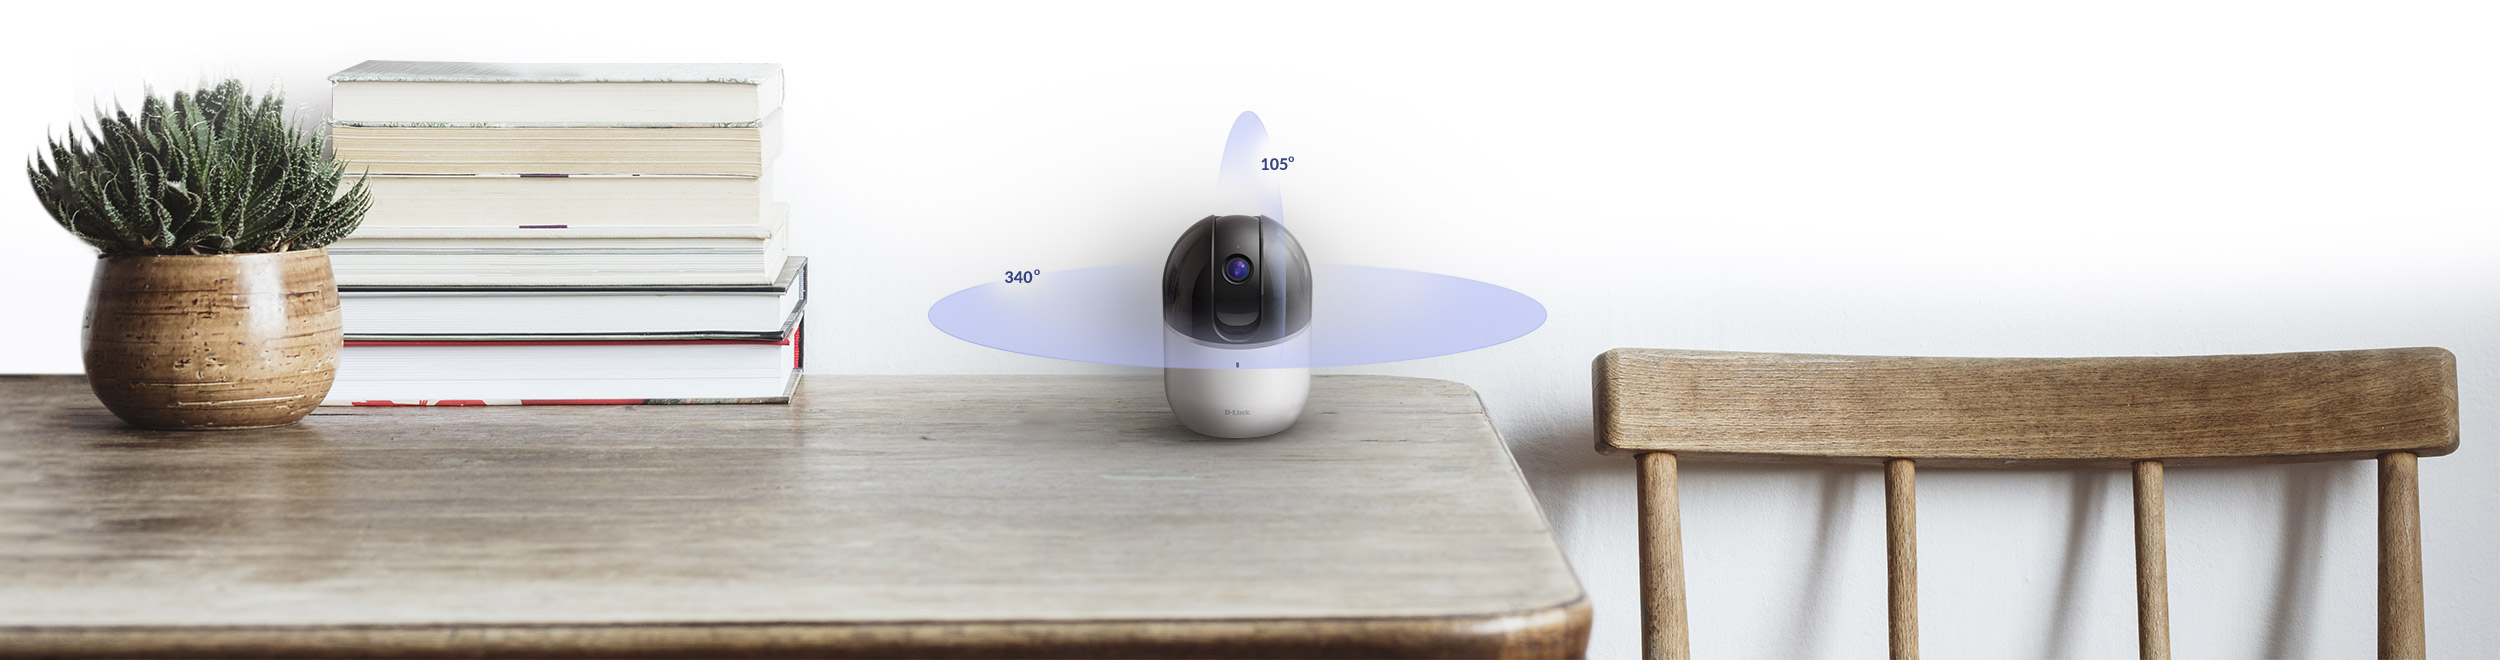 DCS-8515LH mydlink HD Pan & Tilt Wi-Fi Camera on a table